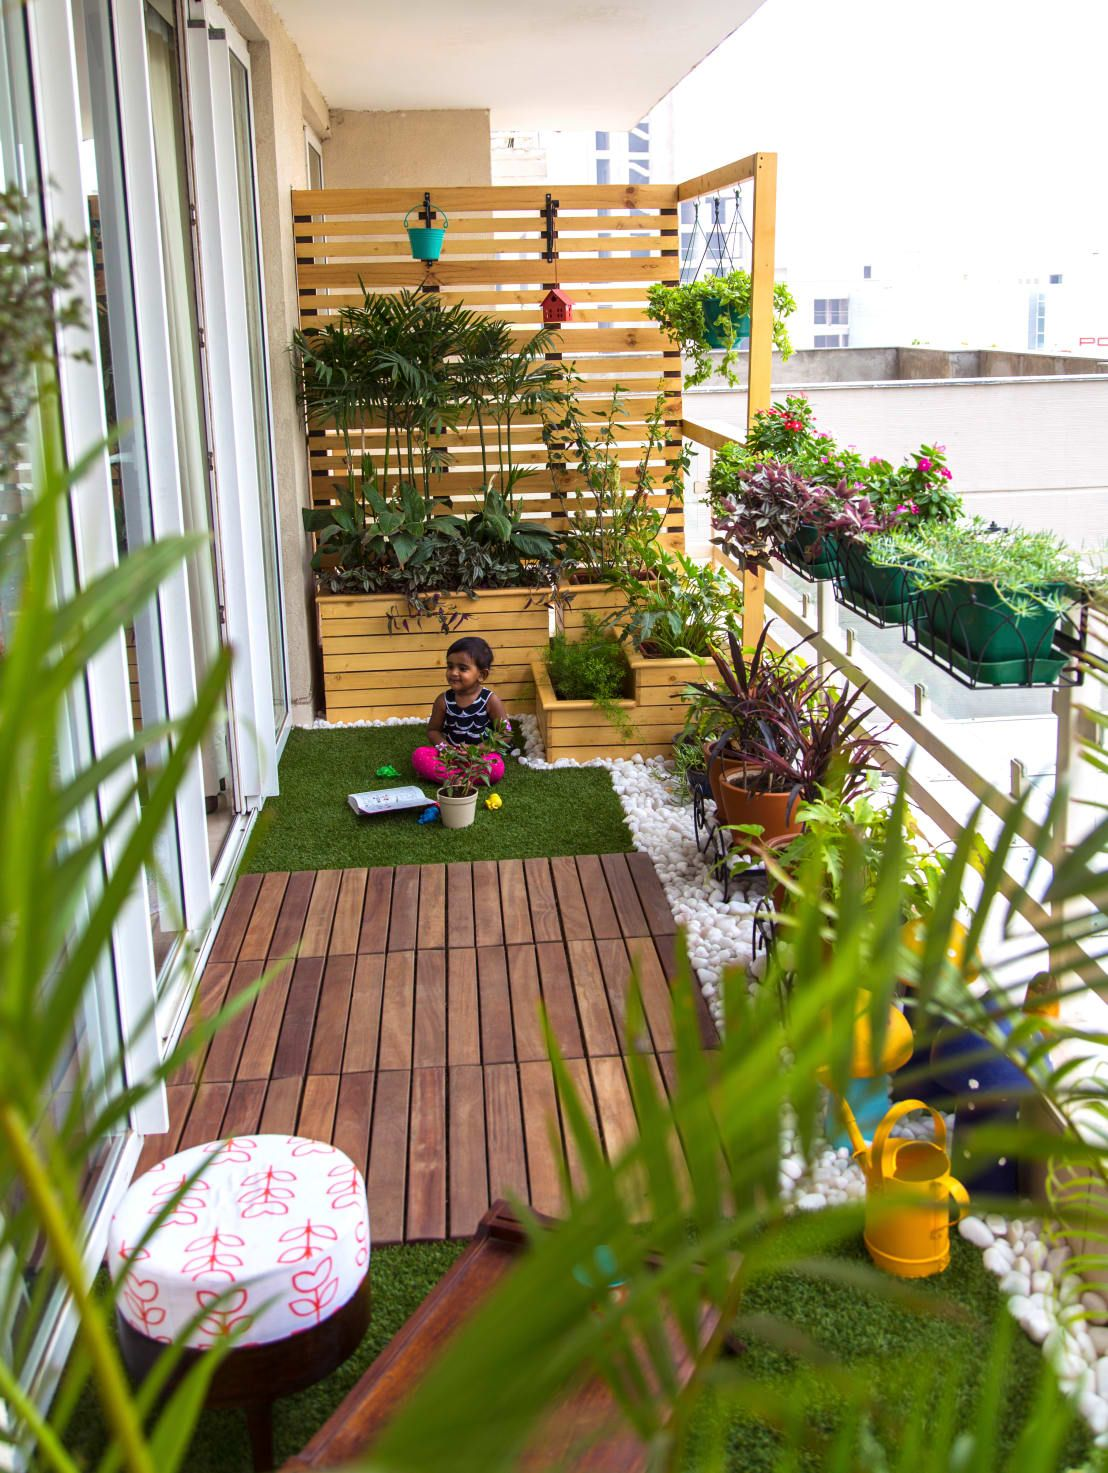 15 Smart Balcony Garden Ideas That are Awesome | Interior I Love ...